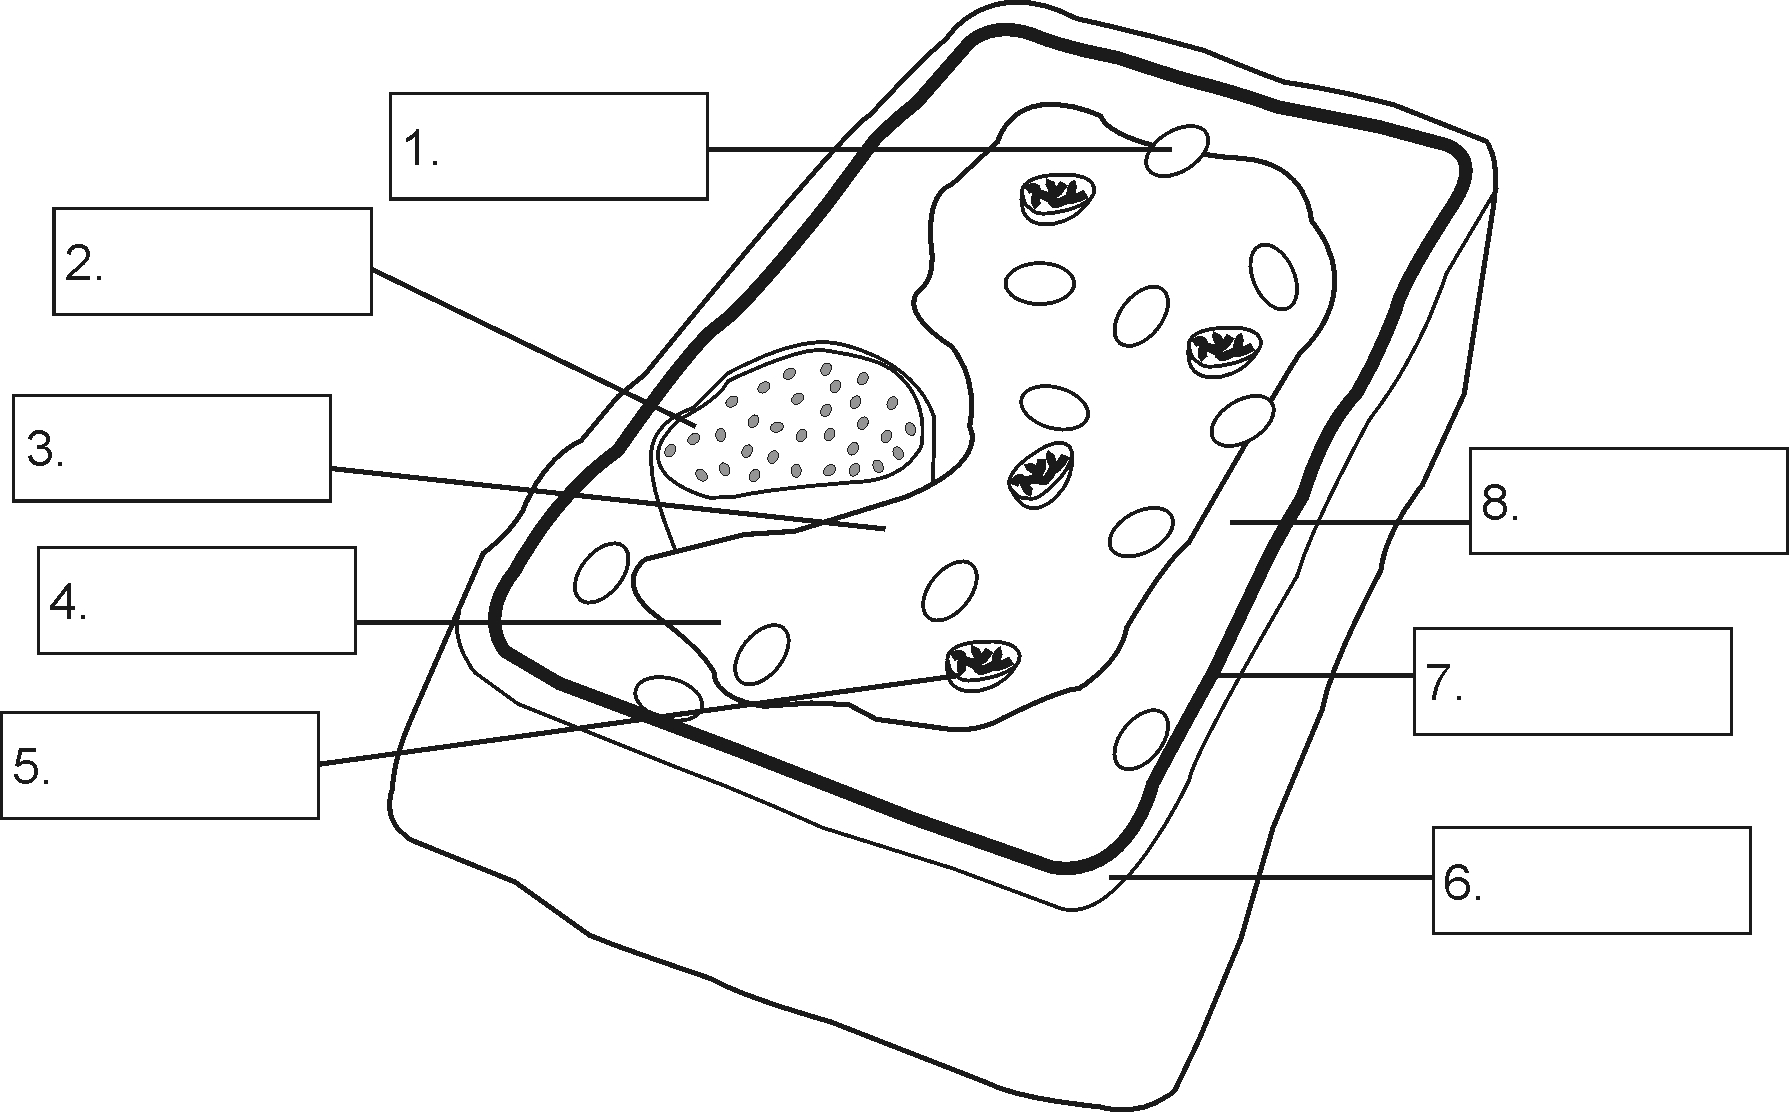 1789x1112 Simple Plant Cell Drawing Animal Cell Diagram Blank. Bone Cells